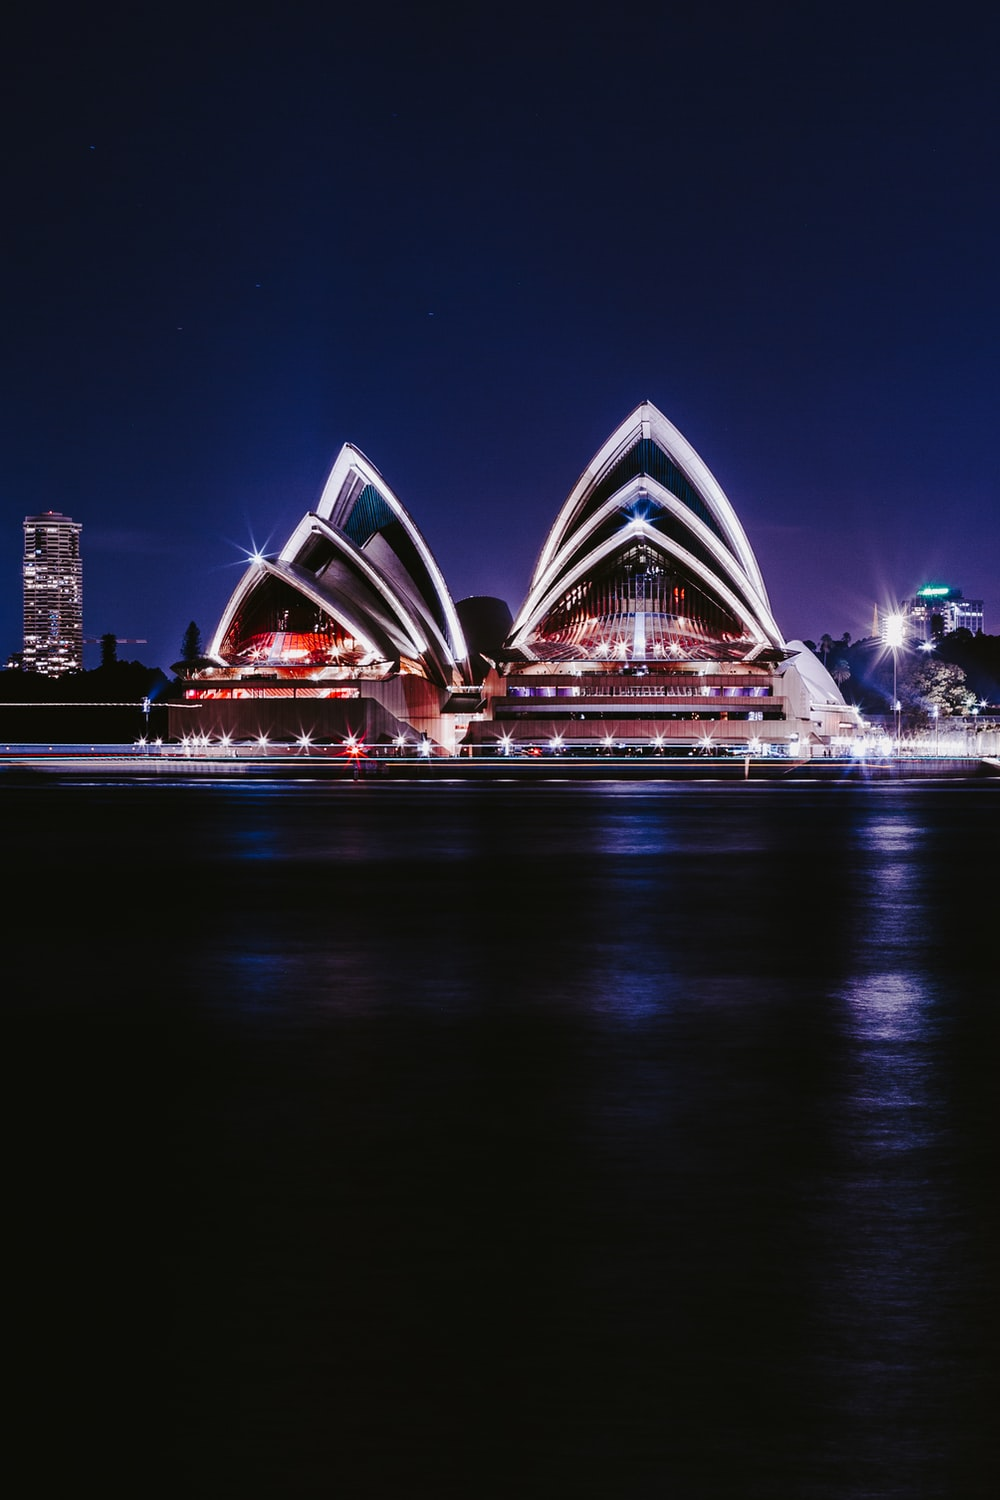 Sydney Opera house view during night